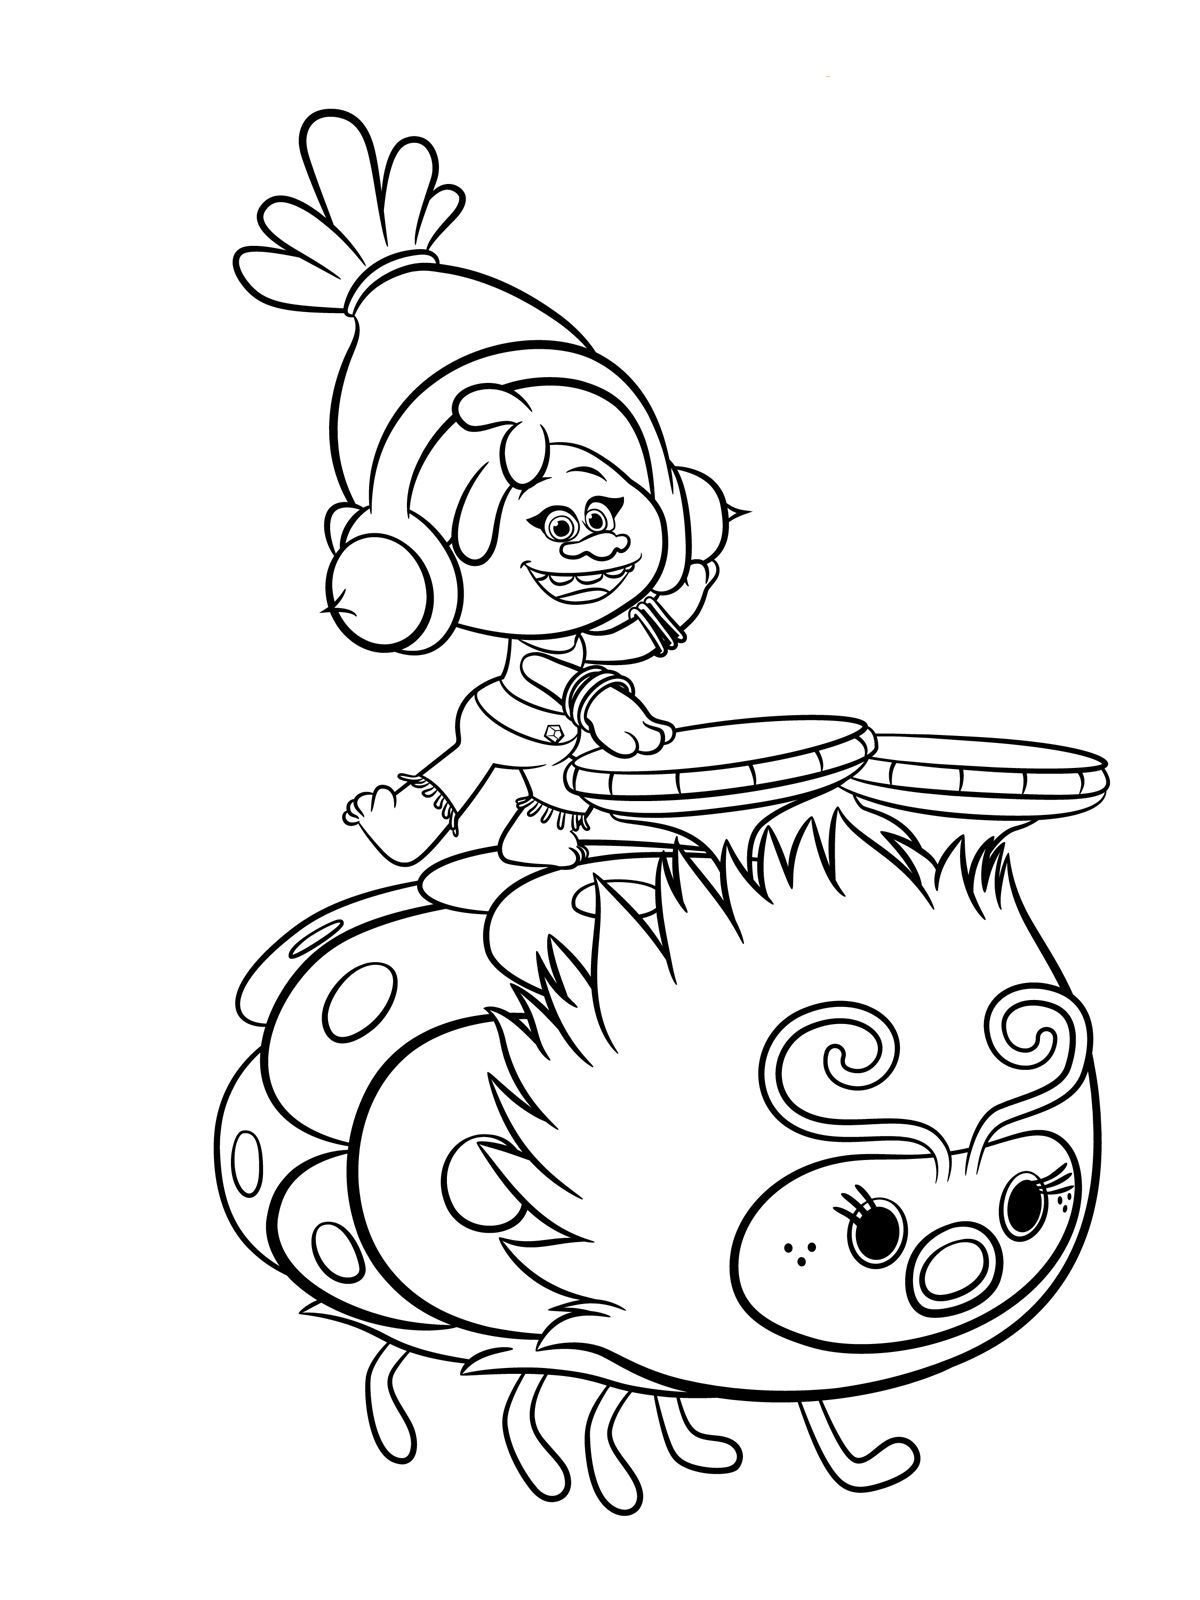 Trolls Coloring Pages To Download And Print For Free | Coloring The - Free Printable Troll Coloring Pages